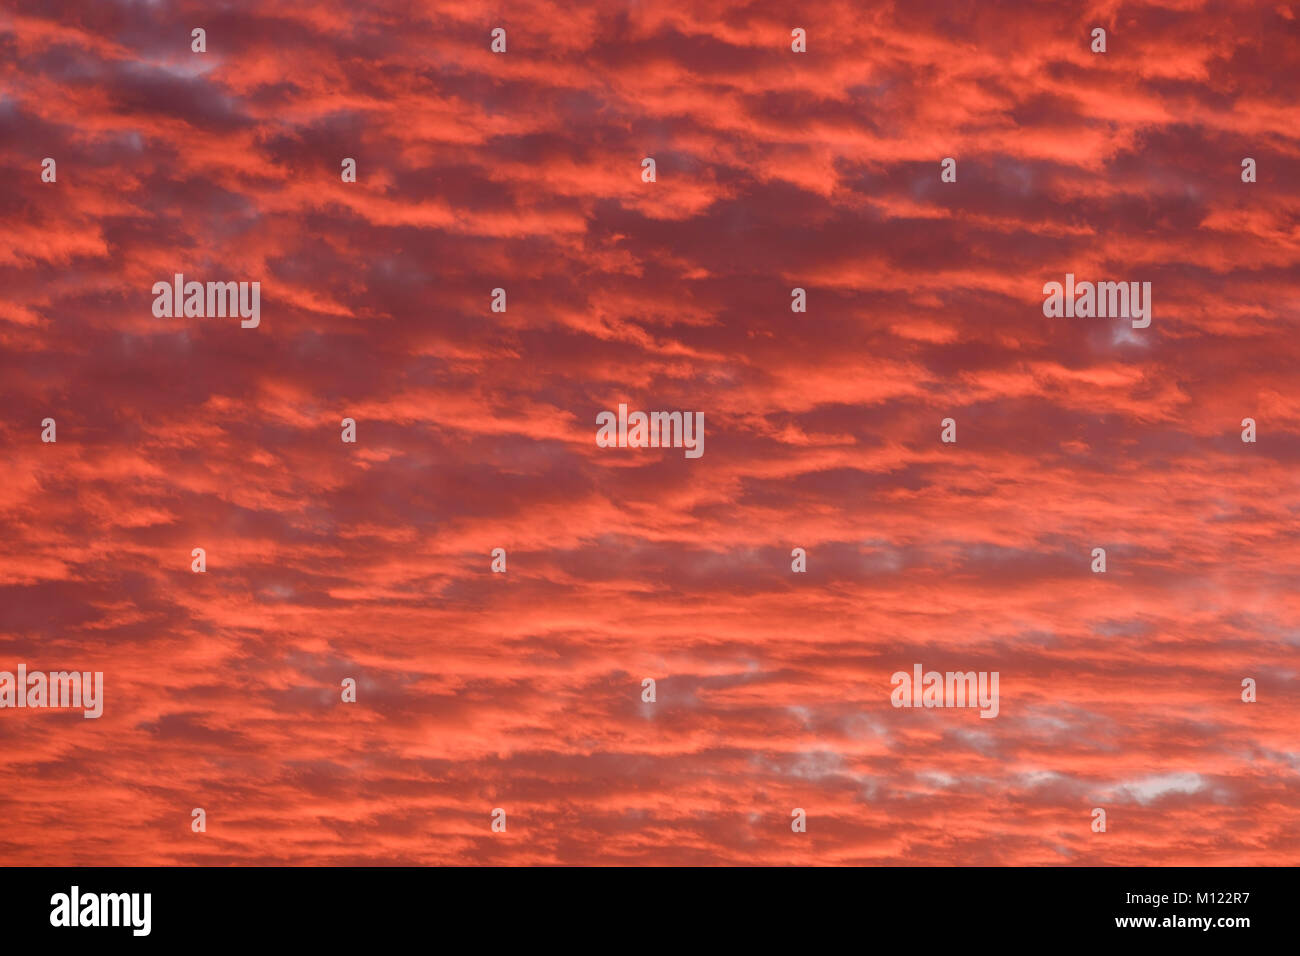 Red cloudy sky at sunset,Atlantic Ocean,La Gomera,Canary Islands,Spain - Stock Image